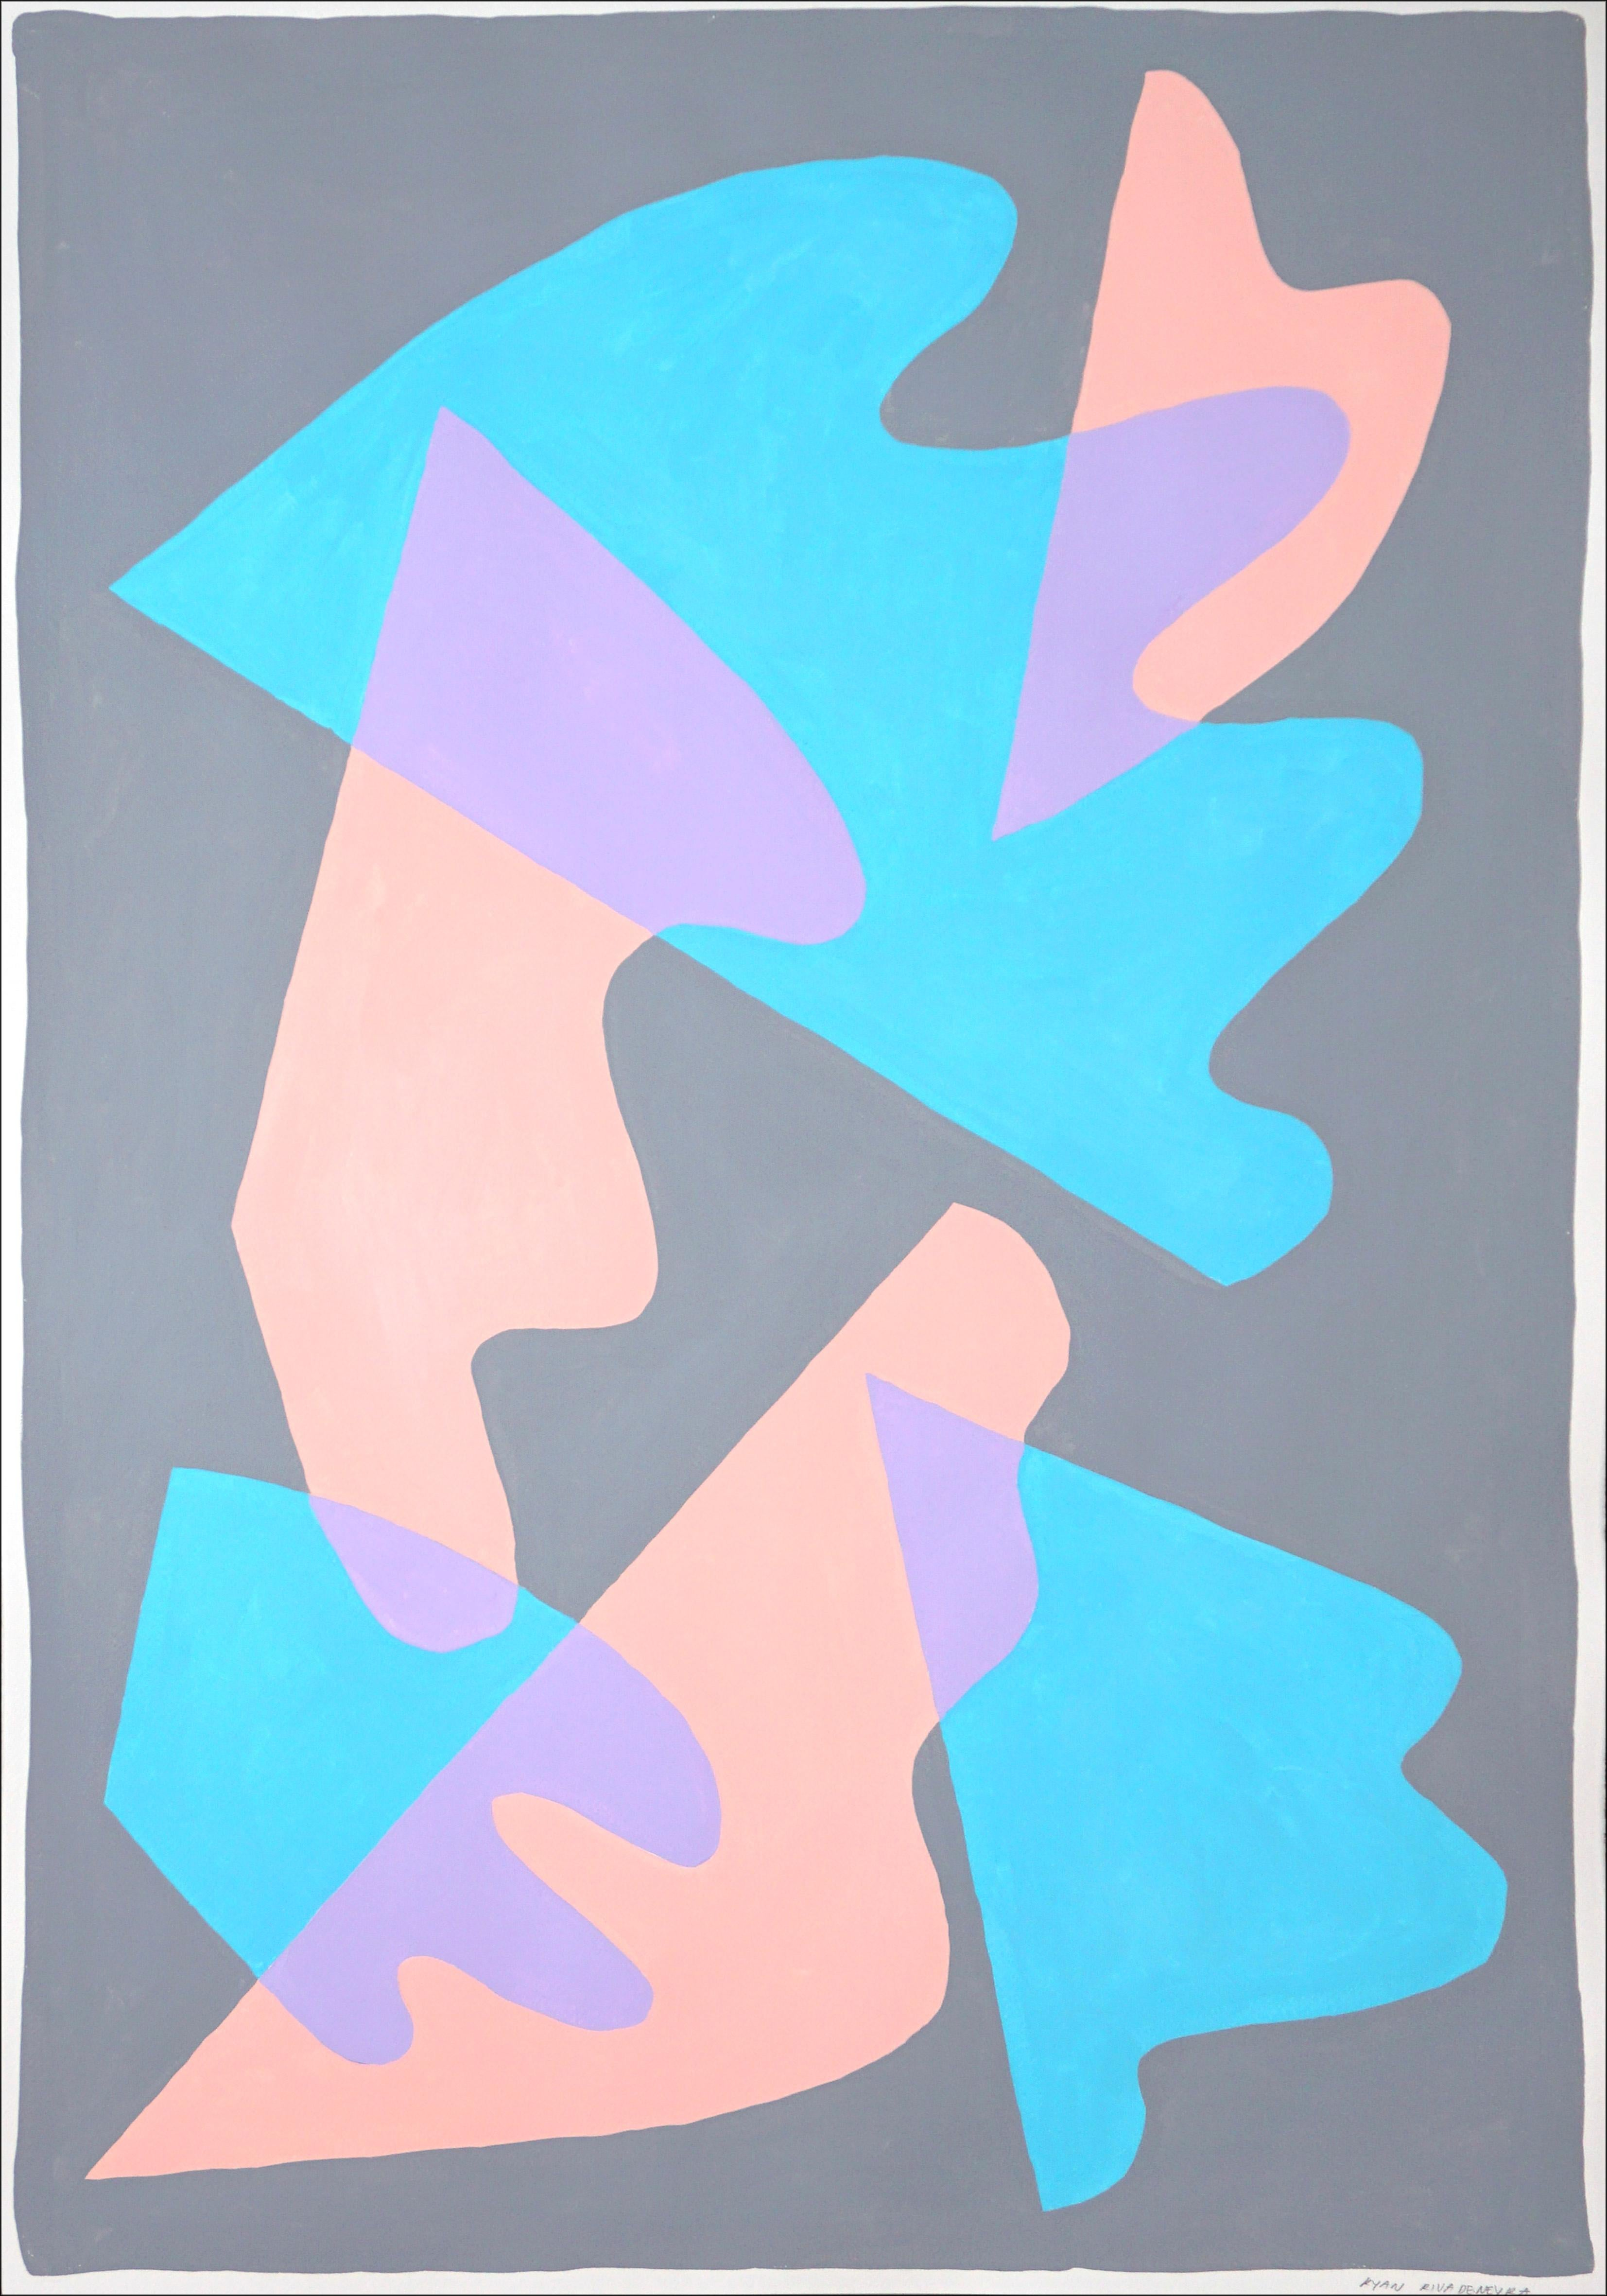 Pastel Wings and Shapes, Mid-Century Shapes, Memphis Style, Abstract Turquoise